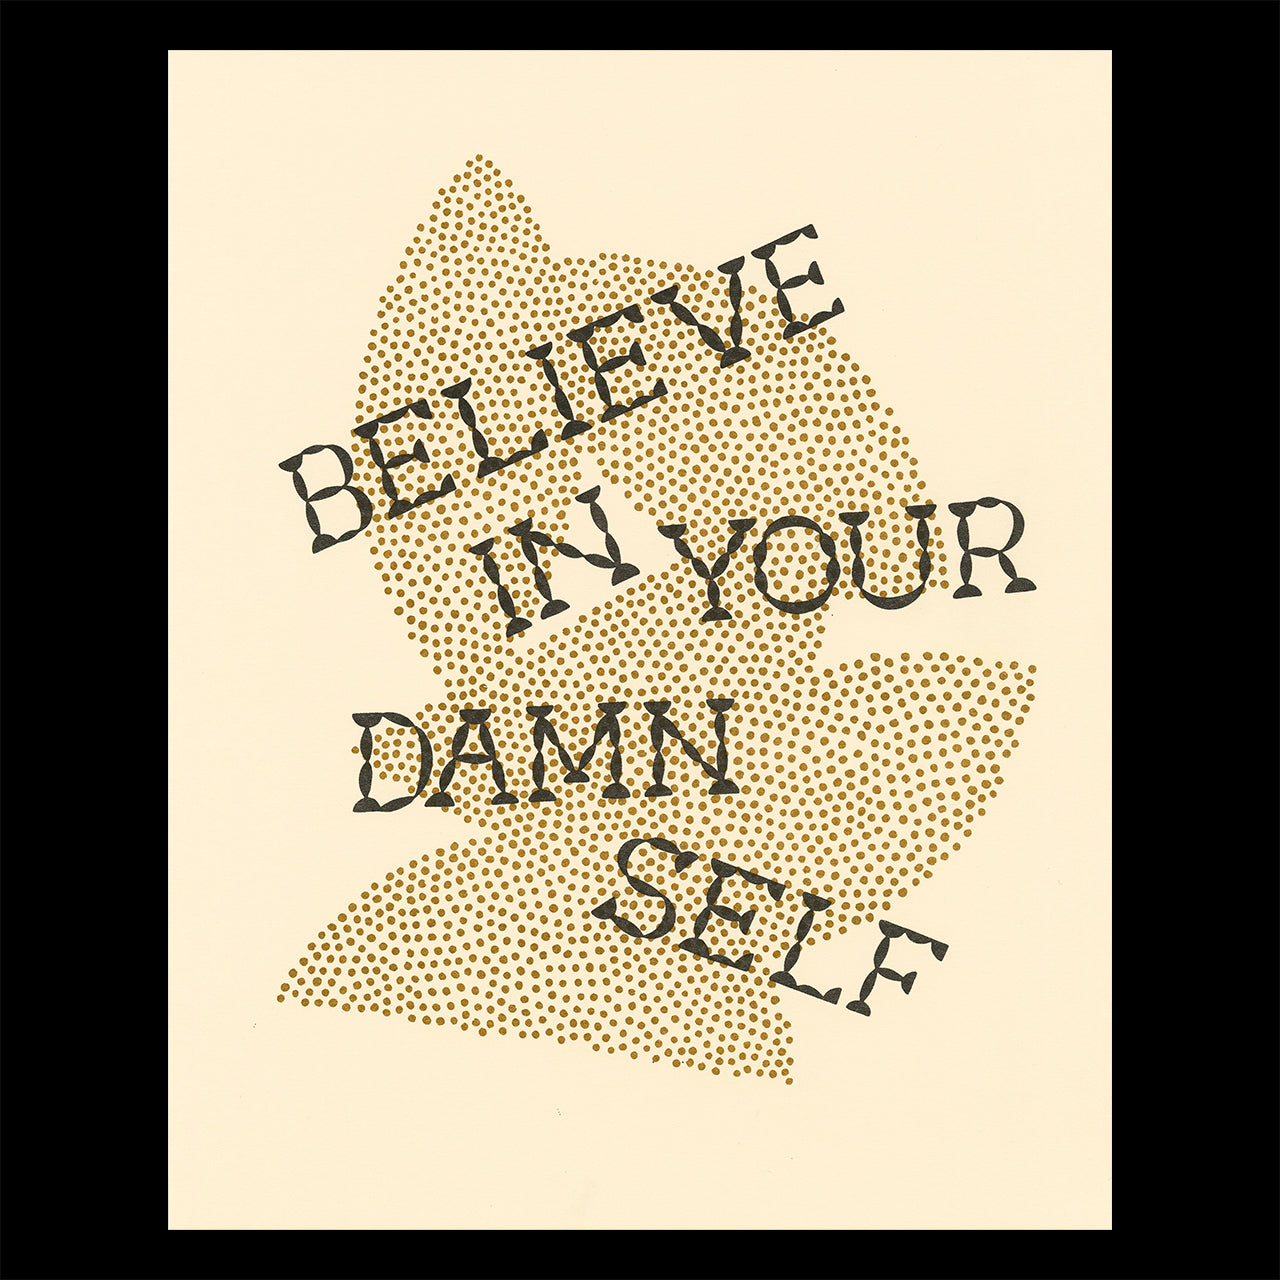 """A print on cream paper with the words """"believe in your damn self"""" over abstract geometric shapes in the background"""